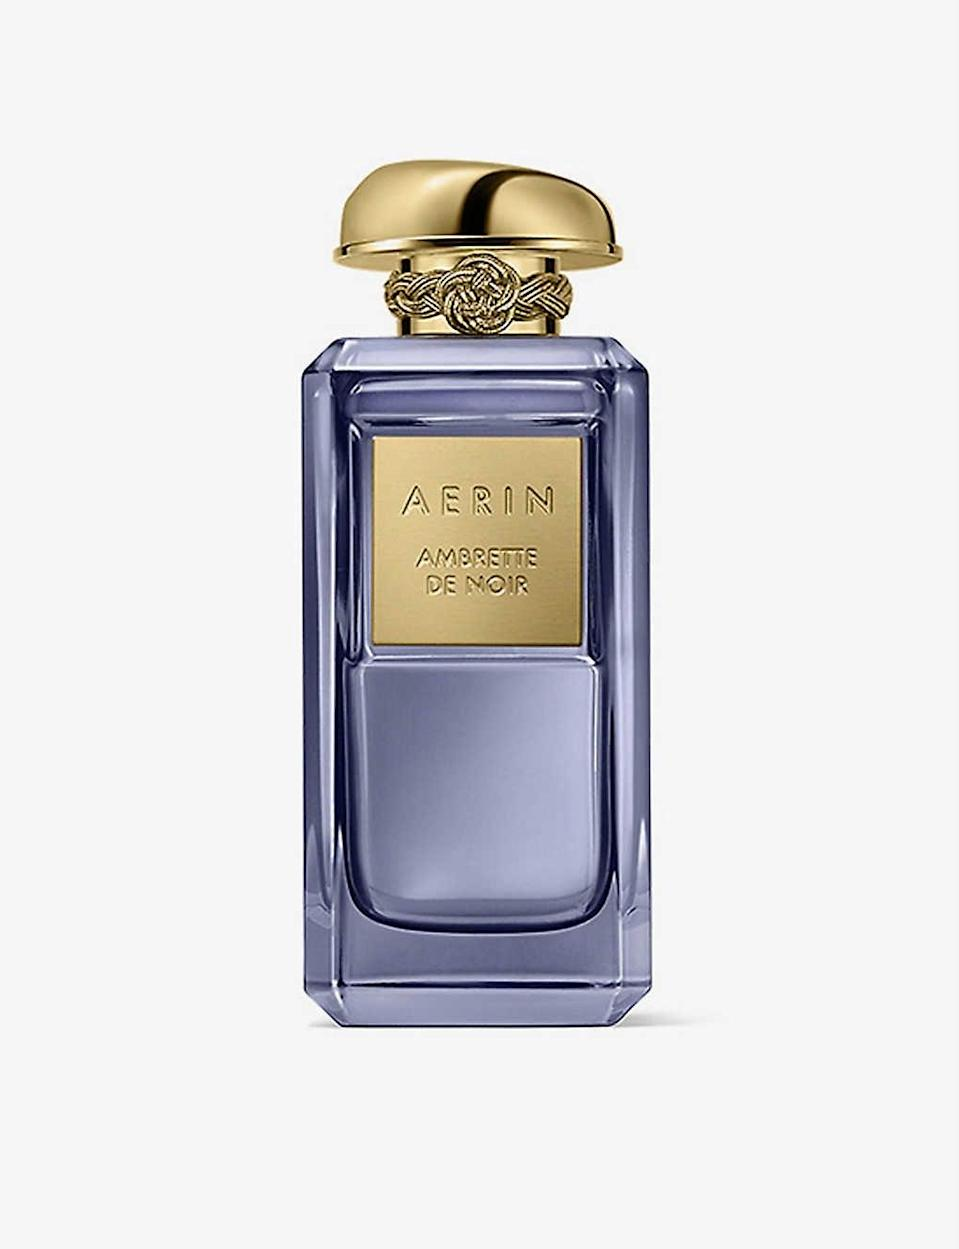 """Aerin's Ambrette de Noir is on the expensive side but we defy anyone to find a perfume as chic (both the bottle and the fragrance inside). At first spritz, this is spicy, warm and comforting thanks to a heavy helping of vanilla bourbon. As the day goes on, those notes give way to sugary nuances, but in a grown-up way. That'll be the rose and tonka, of which anyone with a sweet tooth will approve. <br><br><strong>Aerin</strong> Ambrette de Noir Parfum, $, available at <a href=""""https://www.selfridges.com/GB/en/cat/aerin-ambrette-de-noir-parfum_R03661928/"""" rel=""""nofollow noopener"""" target=""""_blank"""" data-ylk=""""slk:Selfridges"""" class=""""link rapid-noclick-resp"""">Selfridges</a>"""